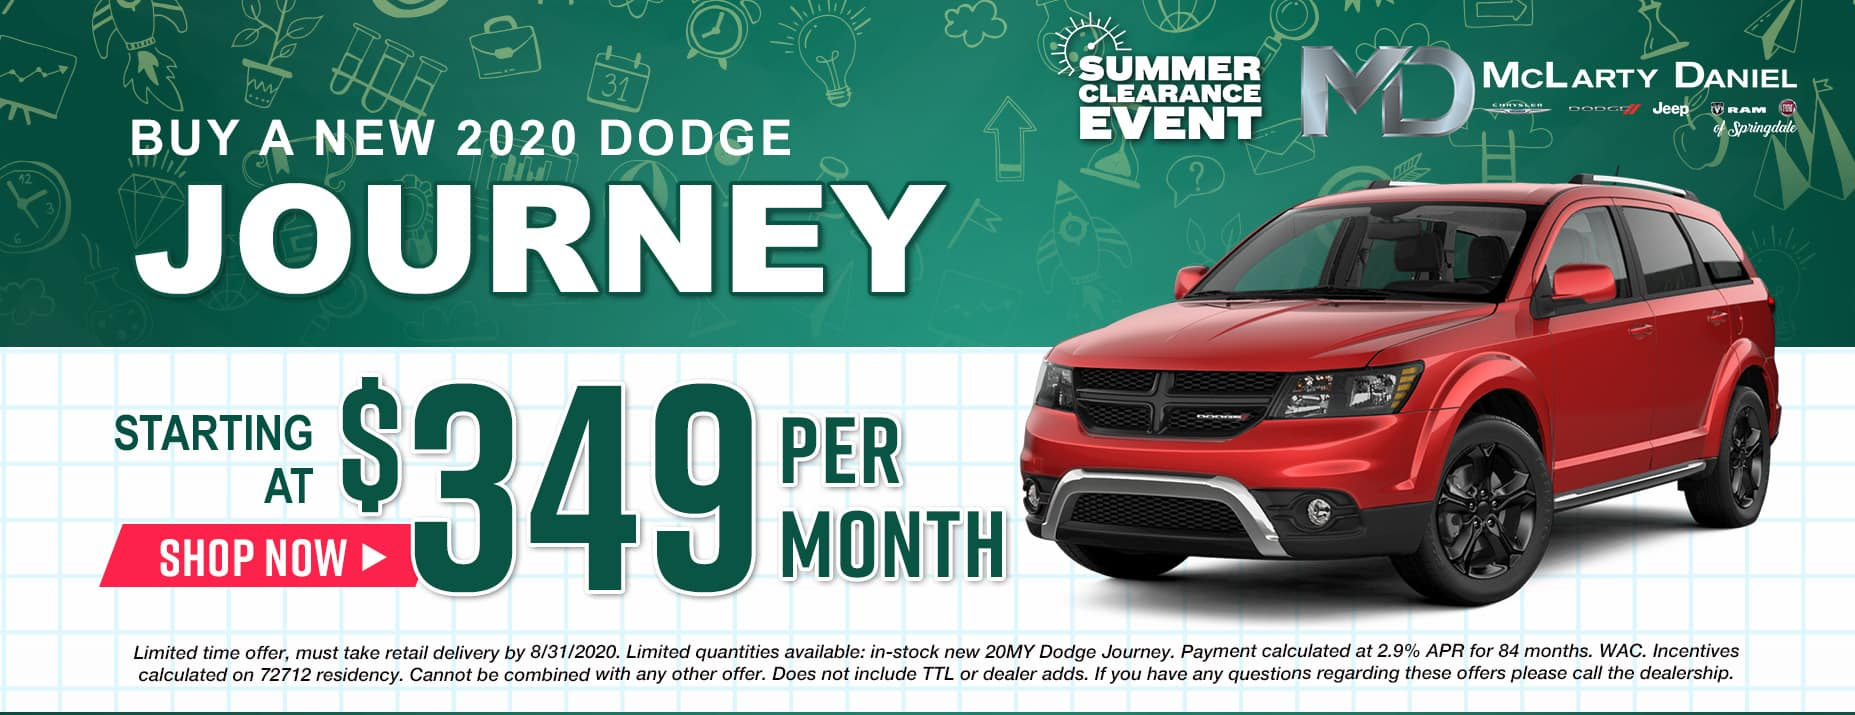 Buy a 2020 Journey starting at only $349/mo!